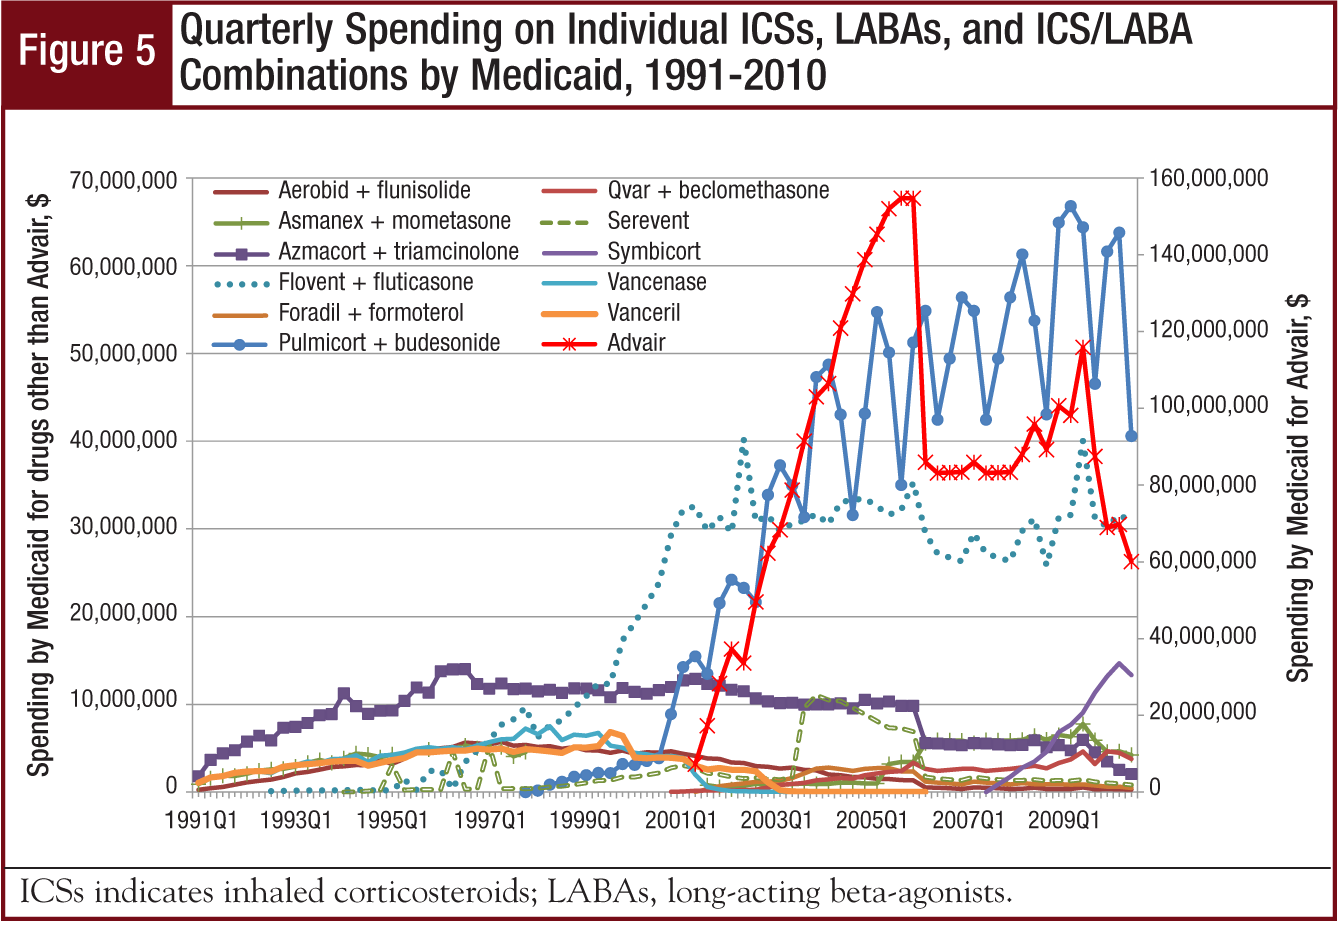 Figure 5 - Quarterly Spending on Individual ICSs, LABAs, and ICS/LABA Combinations by Medicaid, 1991-2010